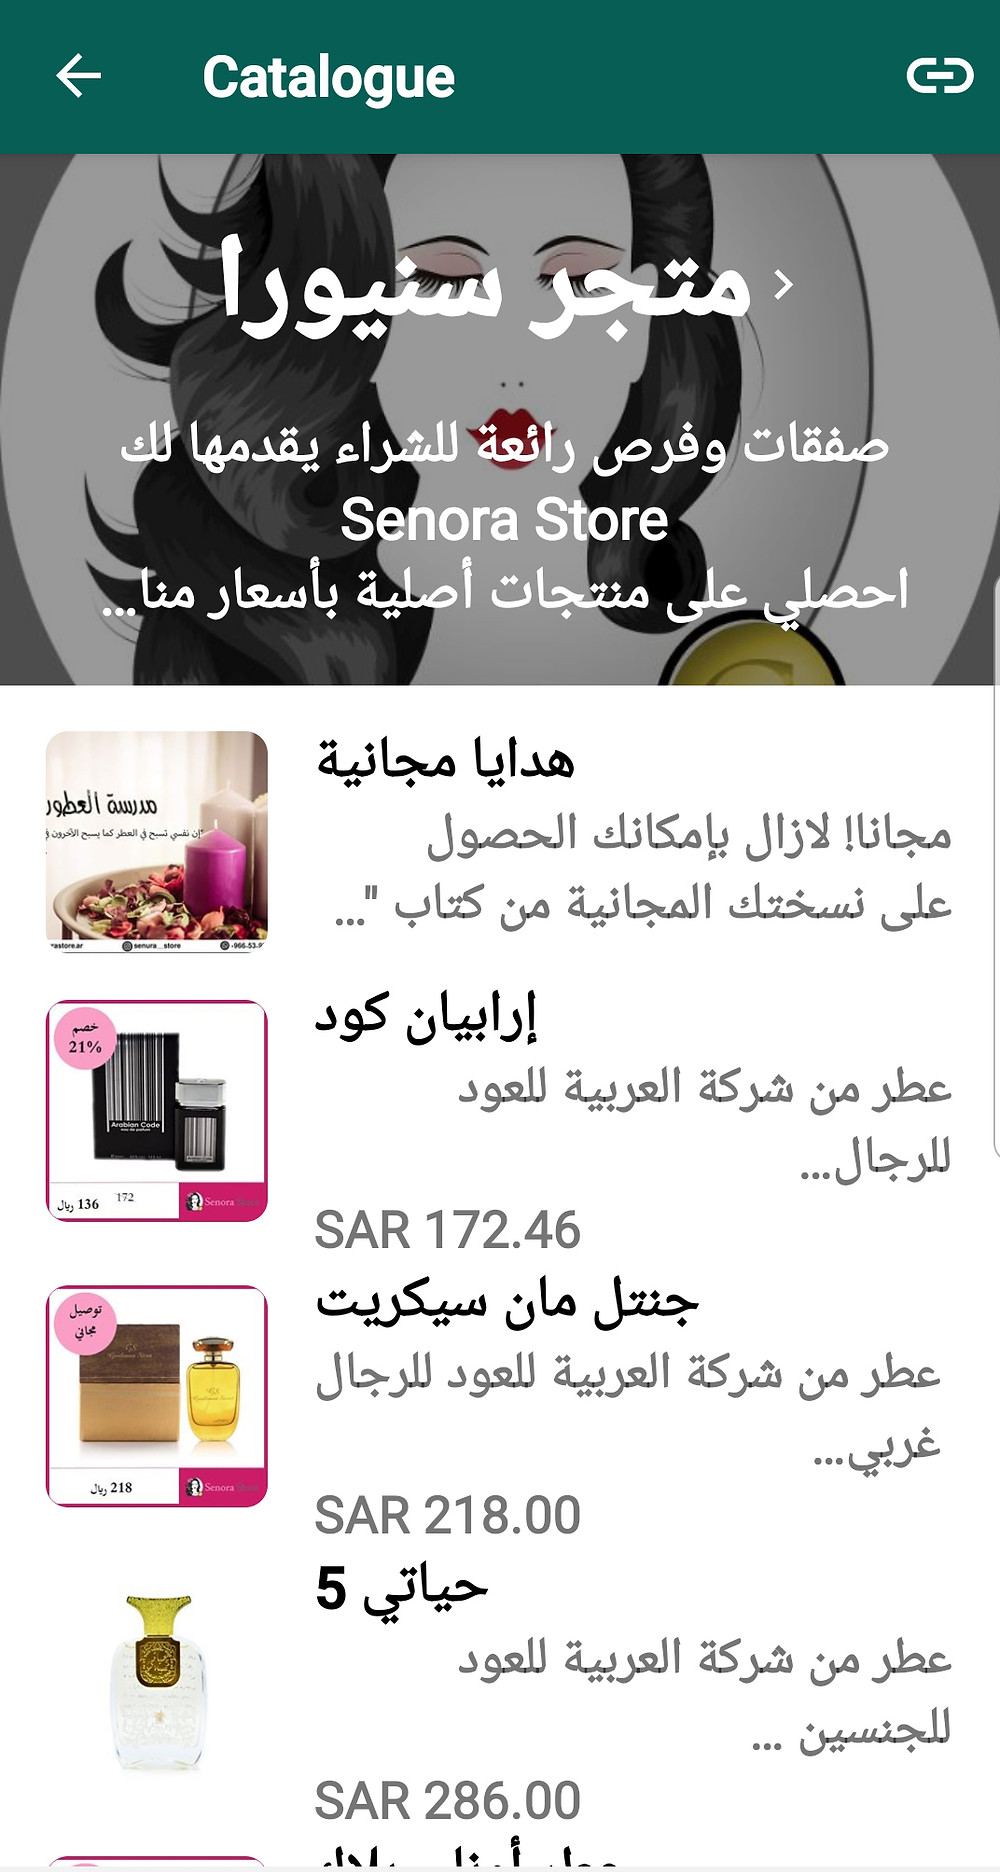 senora store whatsapp catalogue